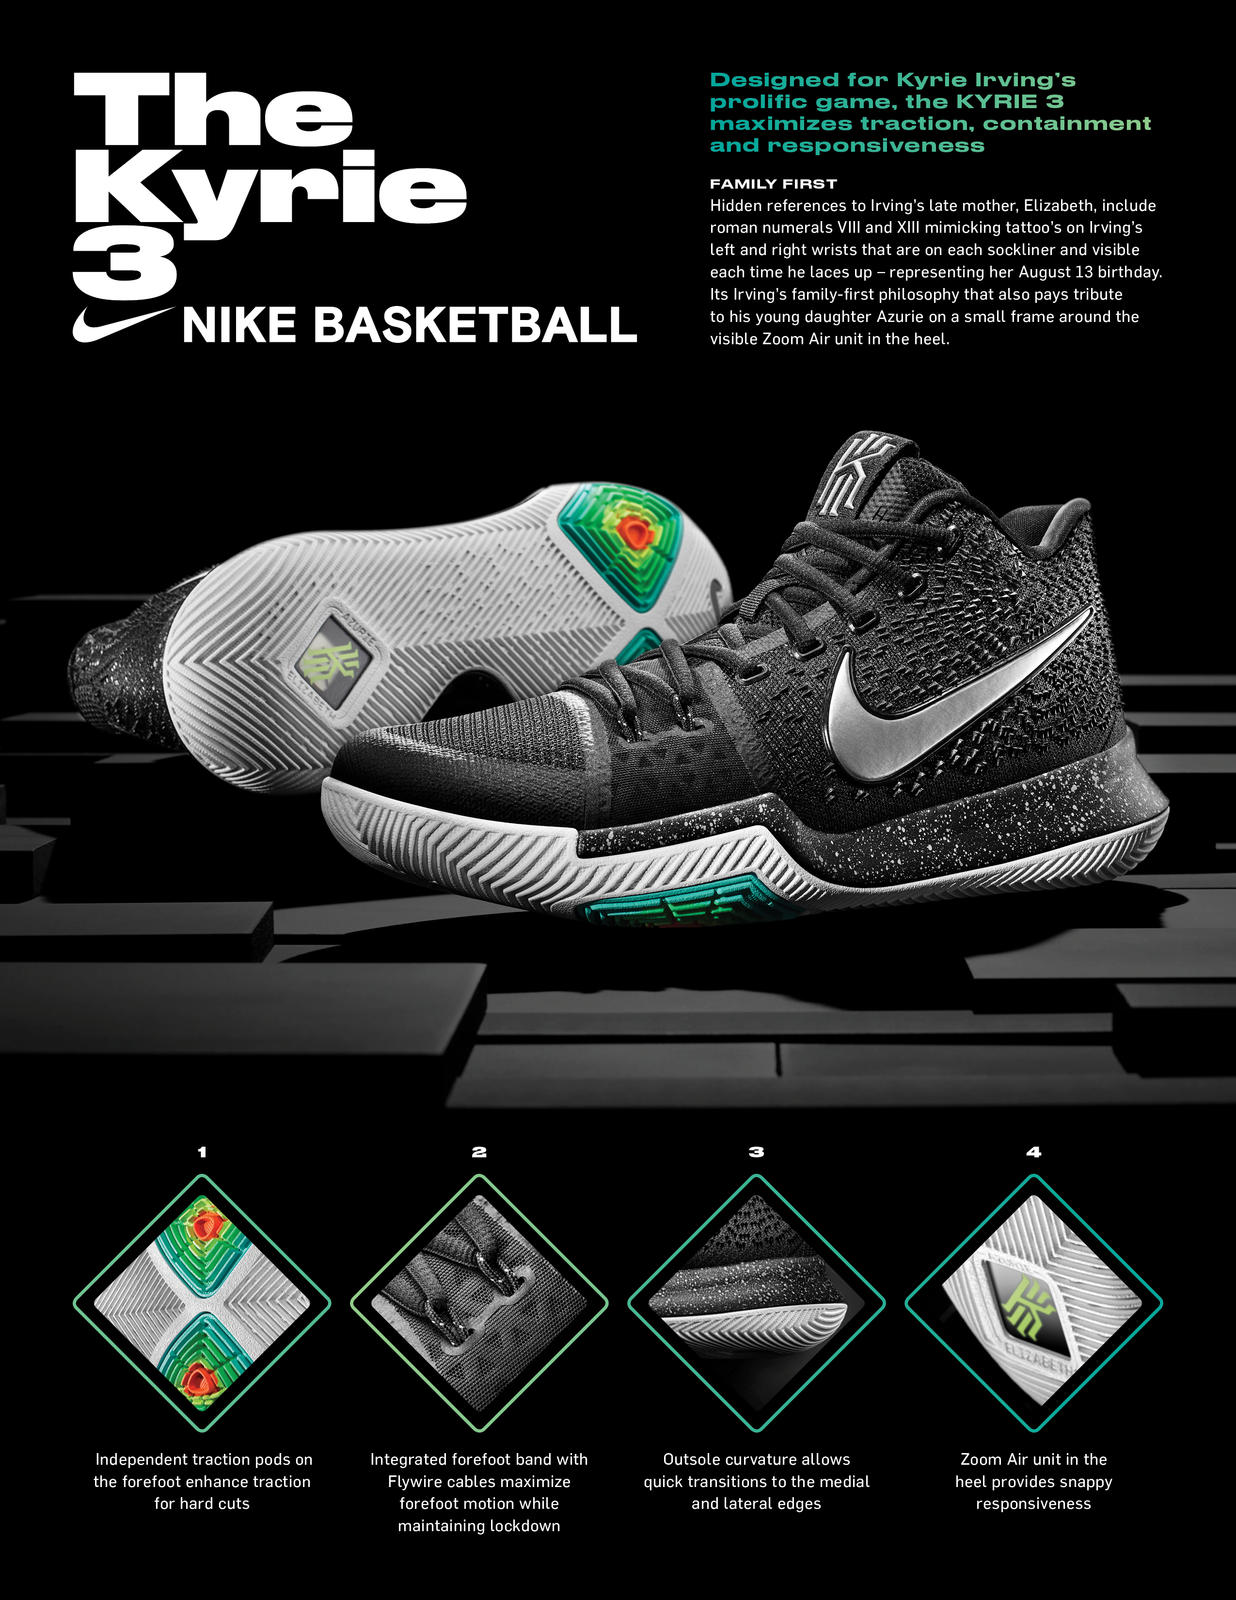 the best attitude 2c3c3 d46b7 024fa b36e4  new style kyrie 3 built for kyrie irvings prolific game nike  news 5185a a7367